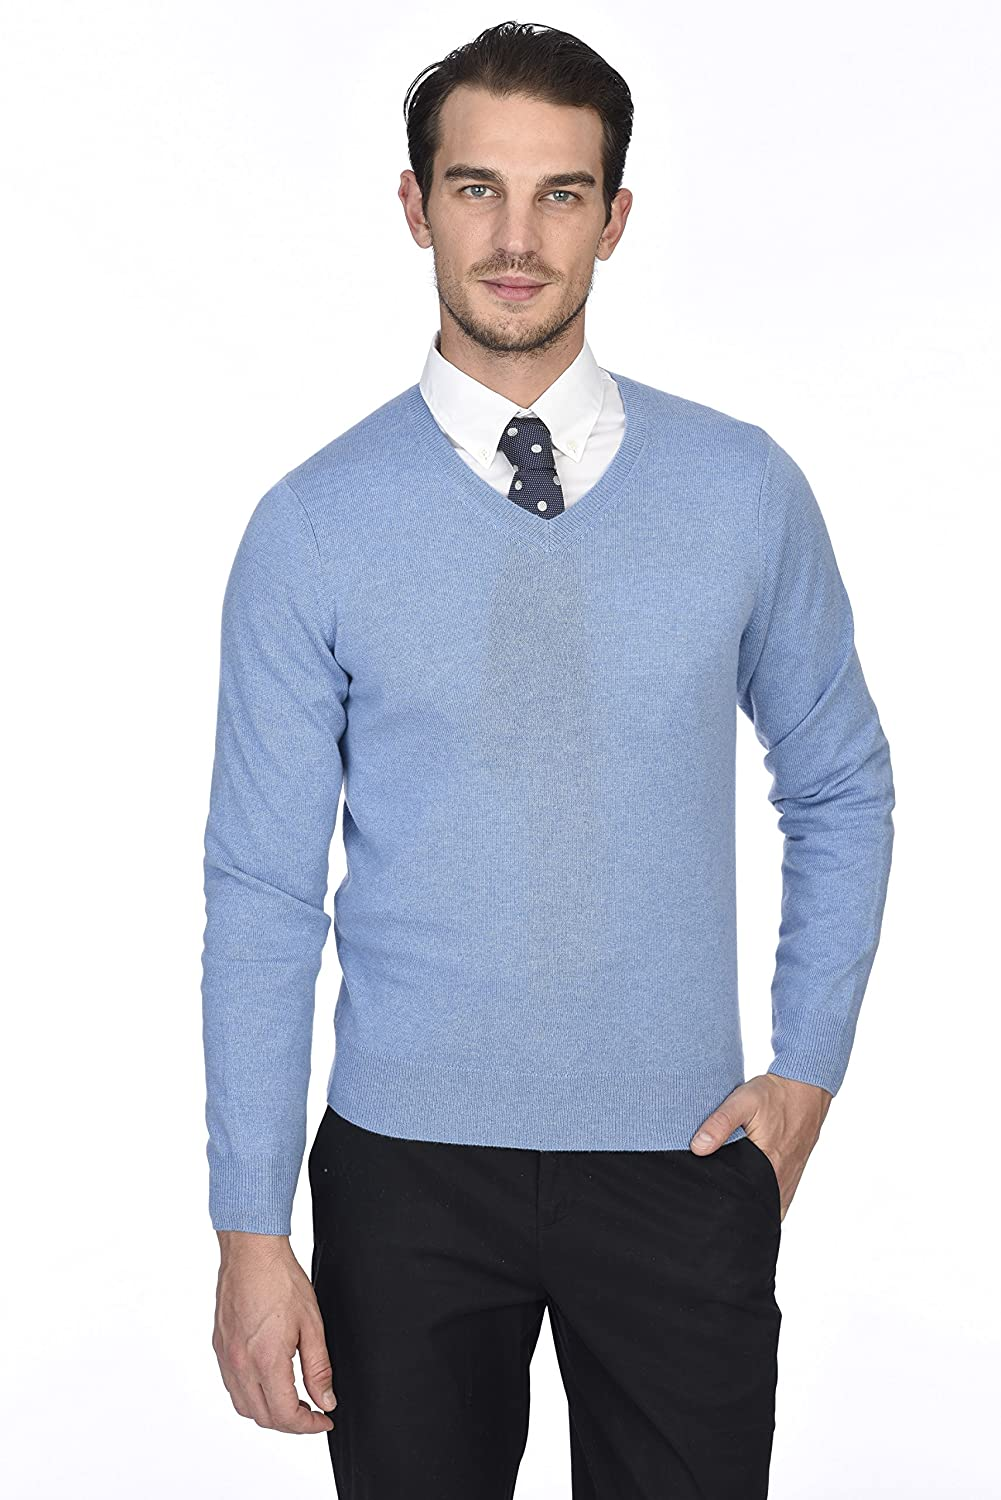 State Cashmere Men's 100% Pure Cashmere Long Sleeve Pullover V Neck Sweater ST3611